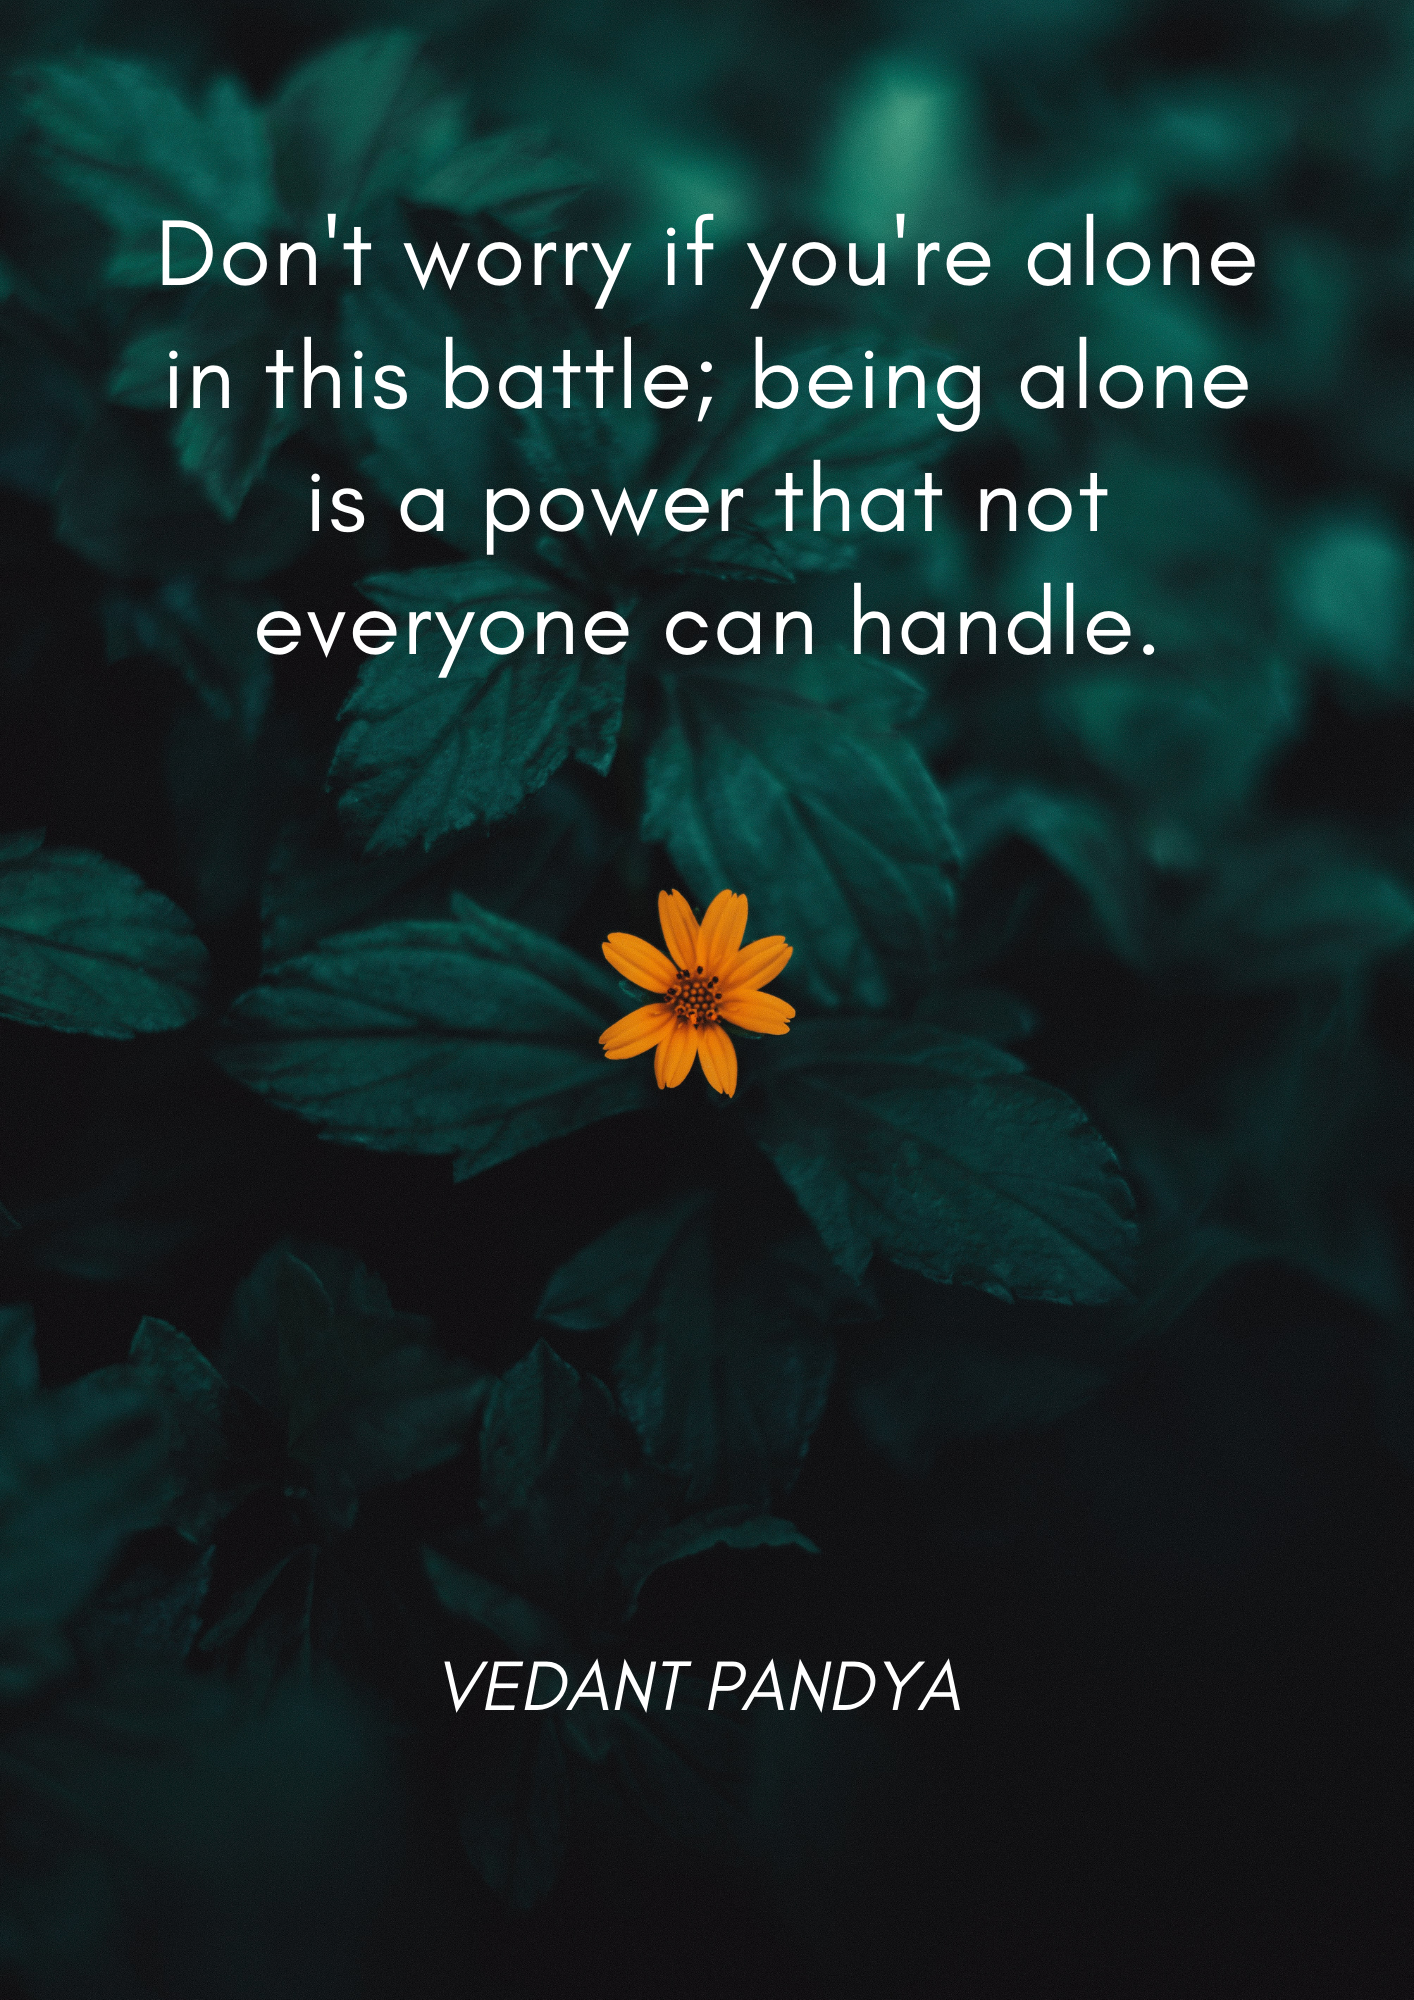 Don'T worry if you're alone in This bo'r'rle; being alone is a power 'rha'r no'r everyone can handle. https://inspirational.ly